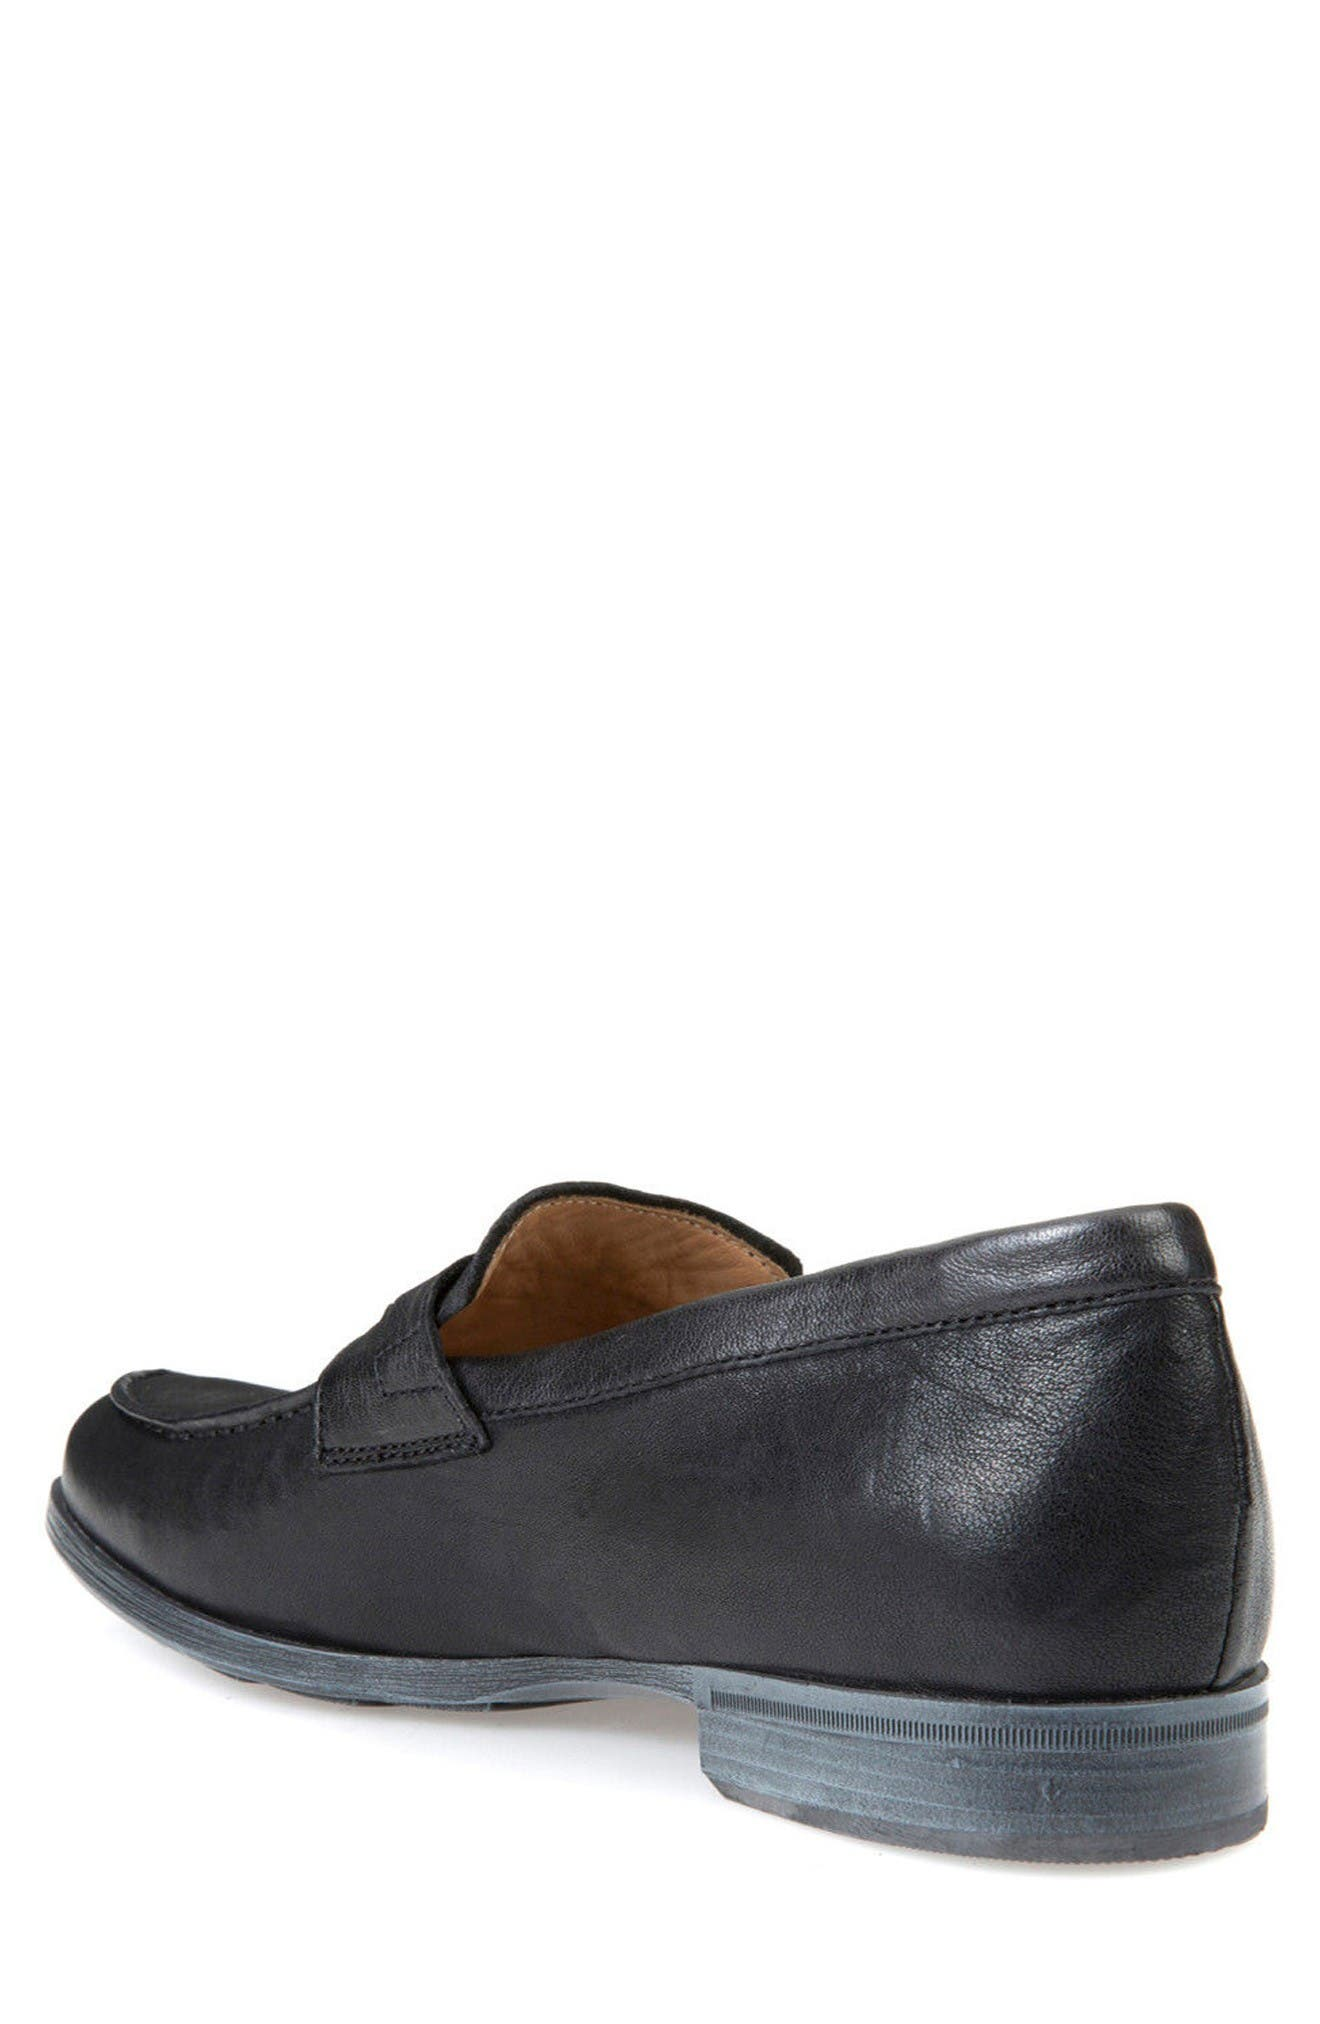 Besmington 6 Penny Loafer,                             Alternate thumbnail 2, color,                             Black Leather